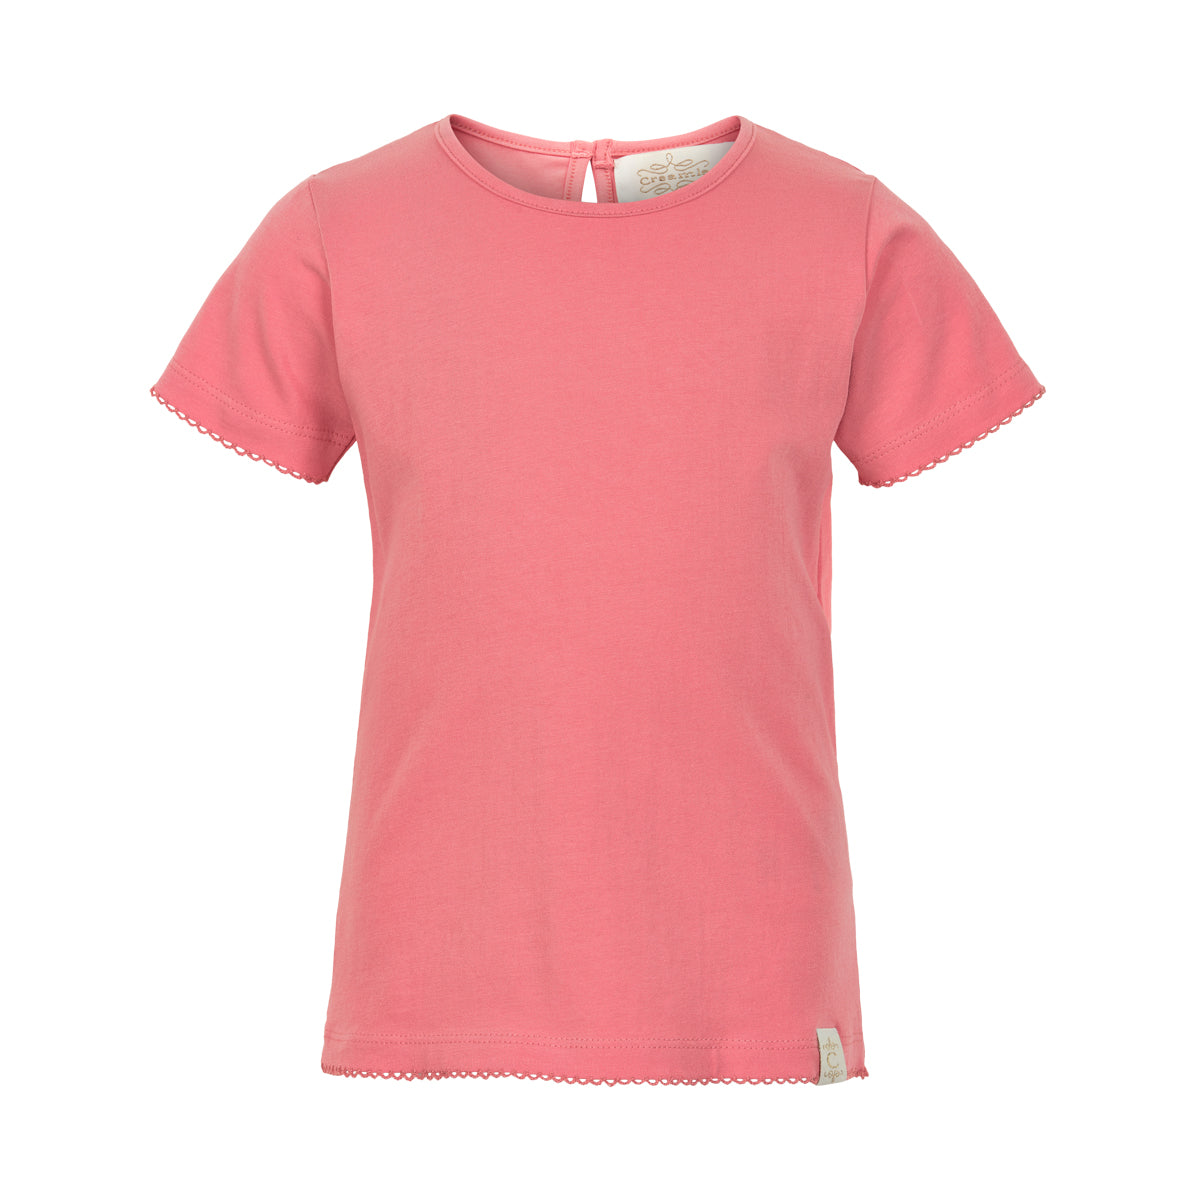 Creamie - T-shirt SS (840089) - Salmon Rose